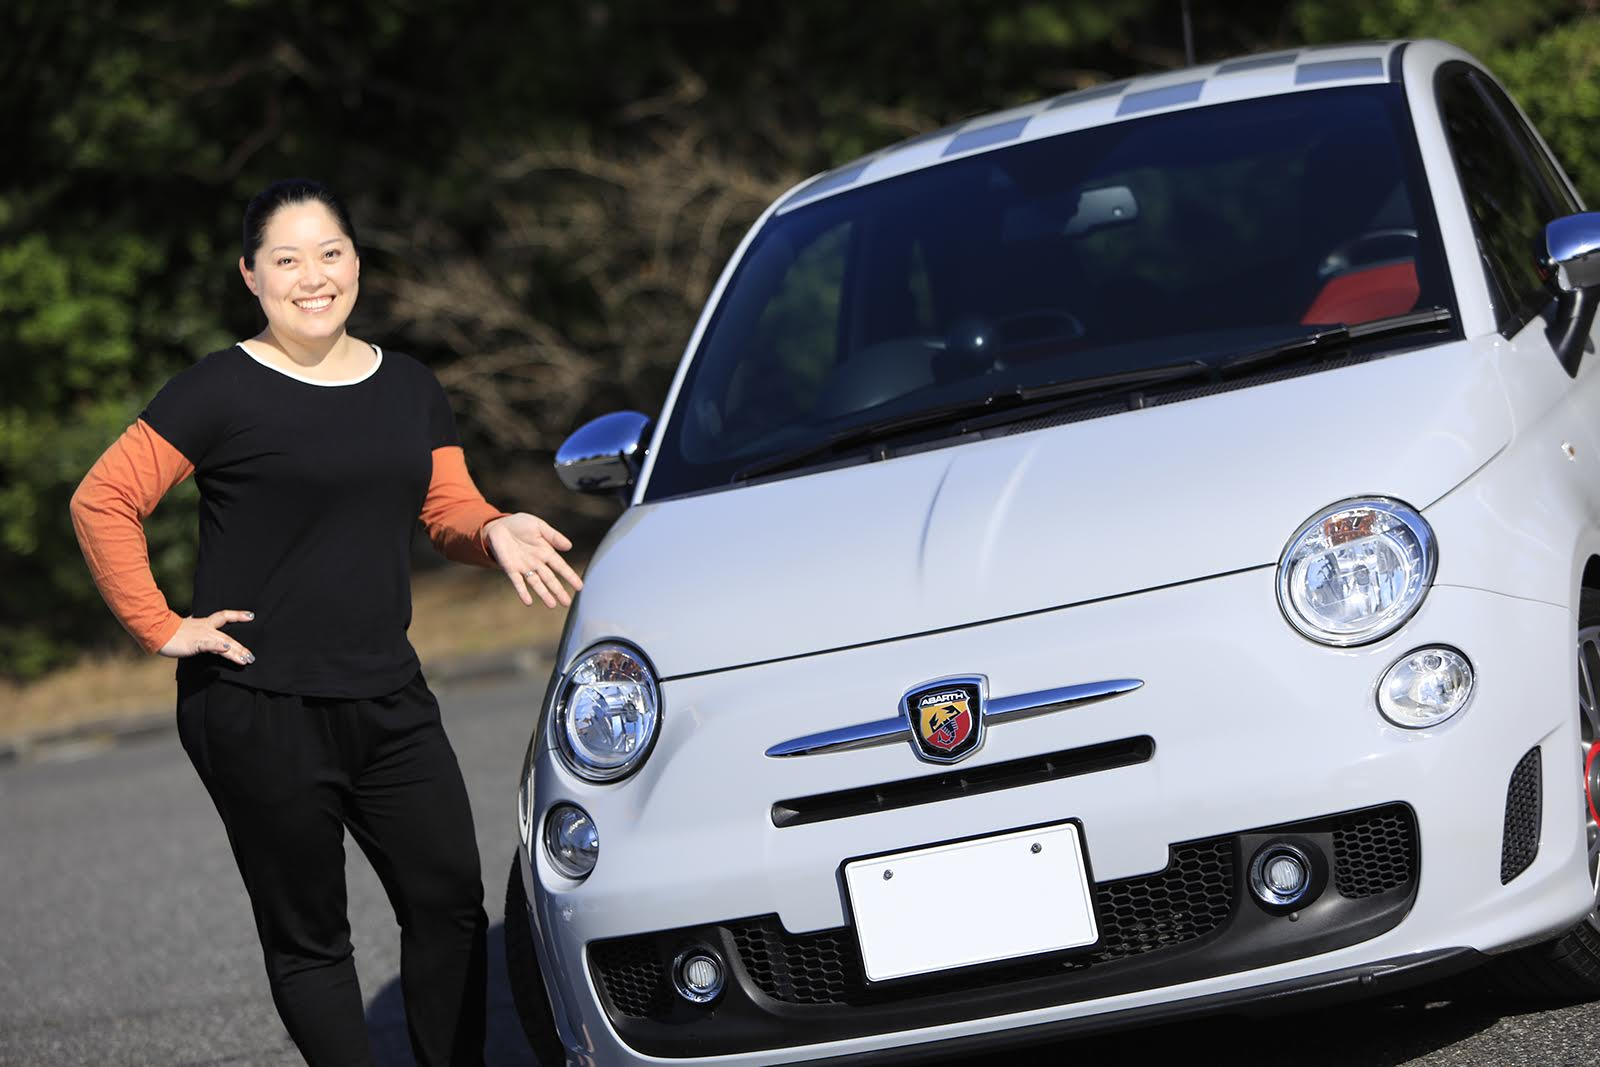 190426_Abarth_Owners_03m